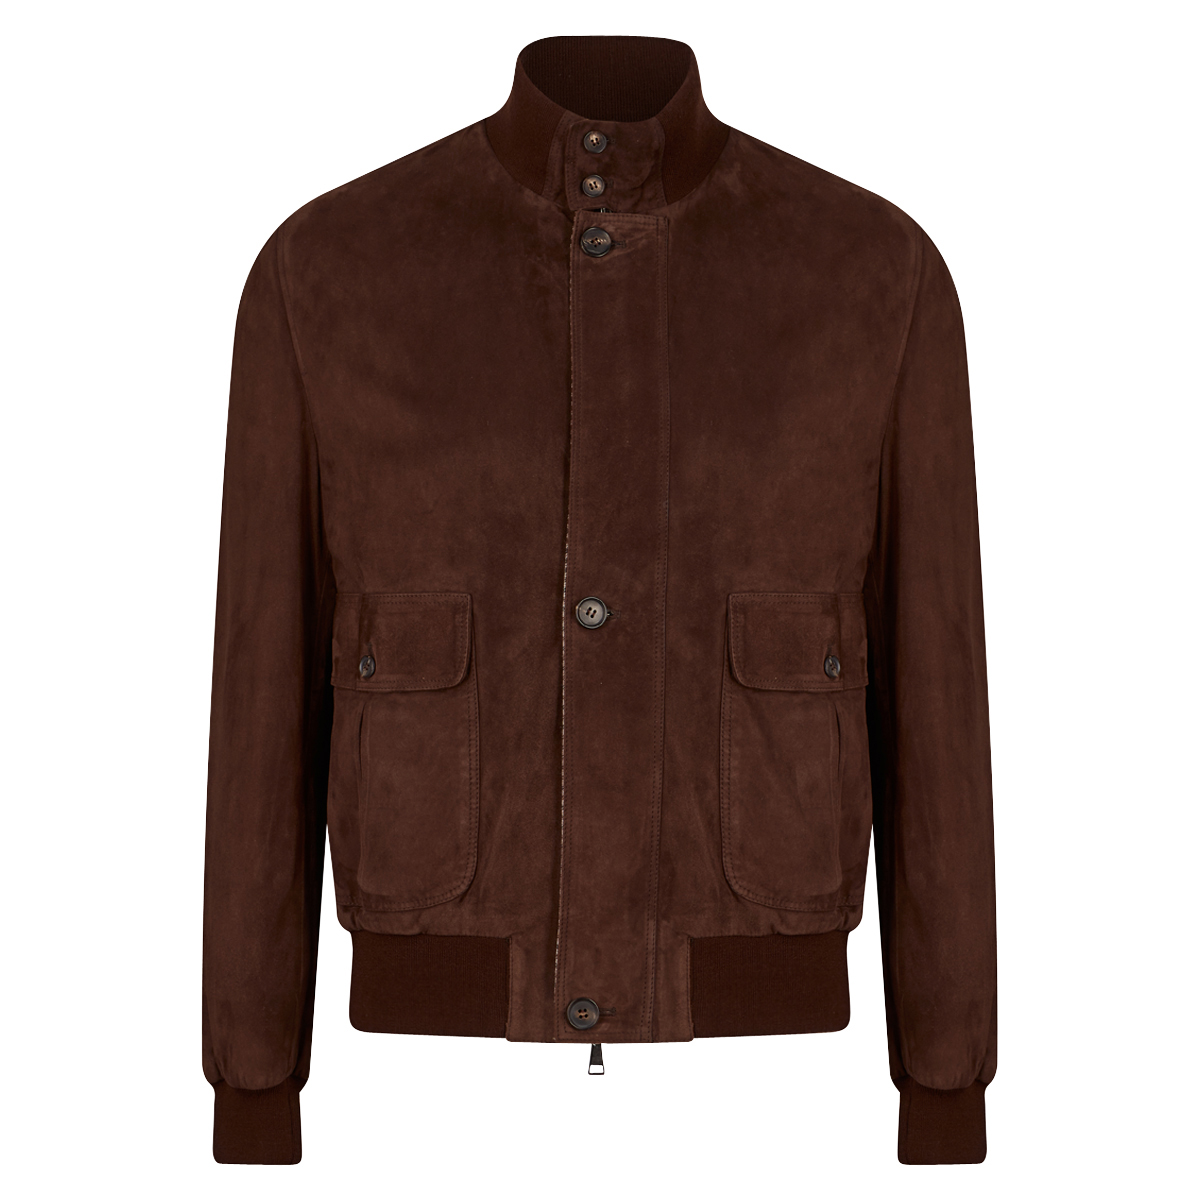 Brown Suede A1 Jacket